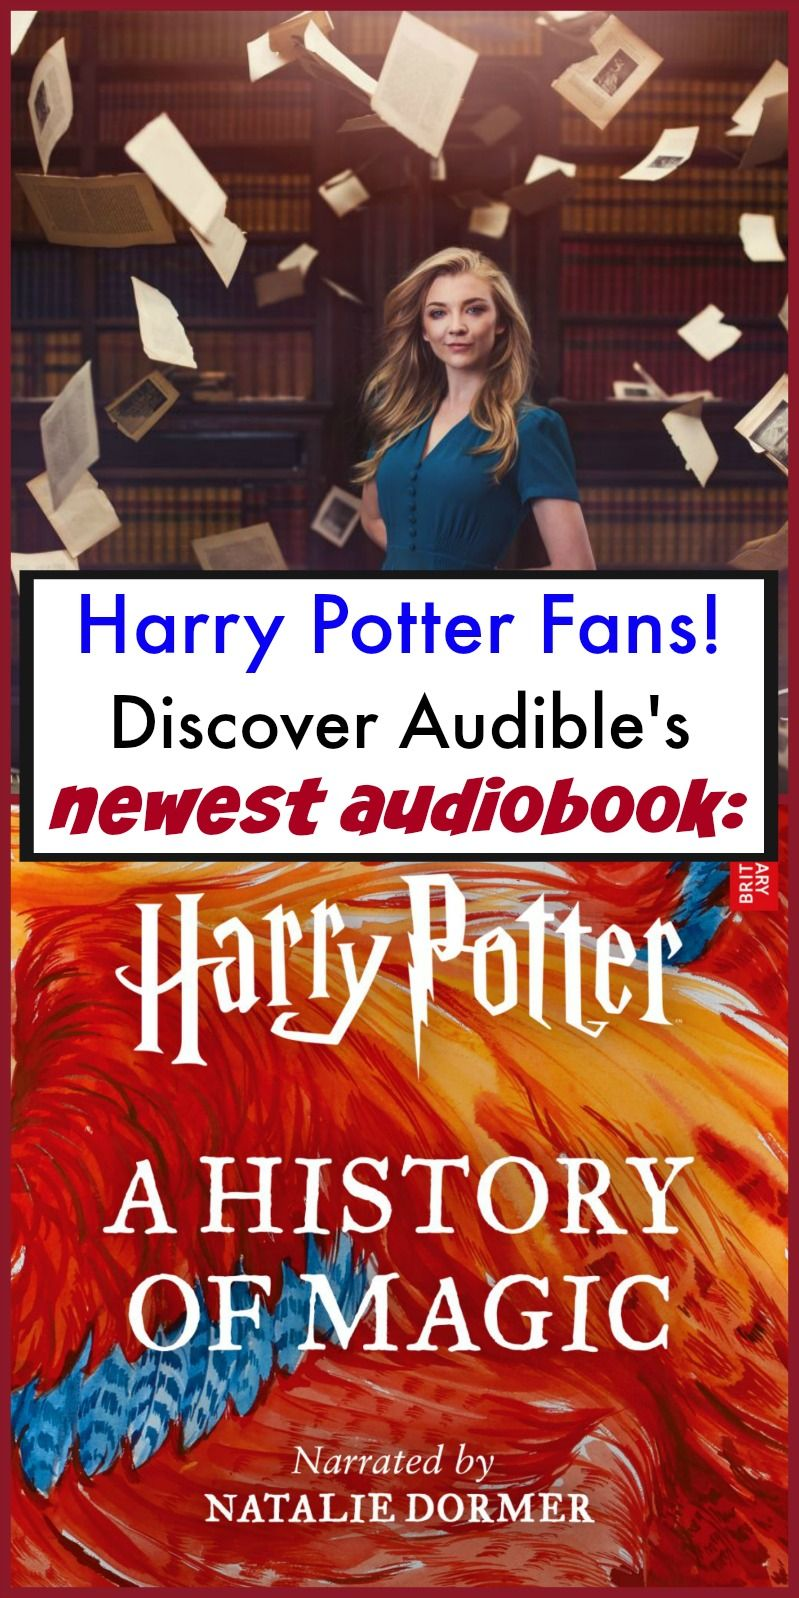 Audible Book for Harry Potter Fans Harry Potter History